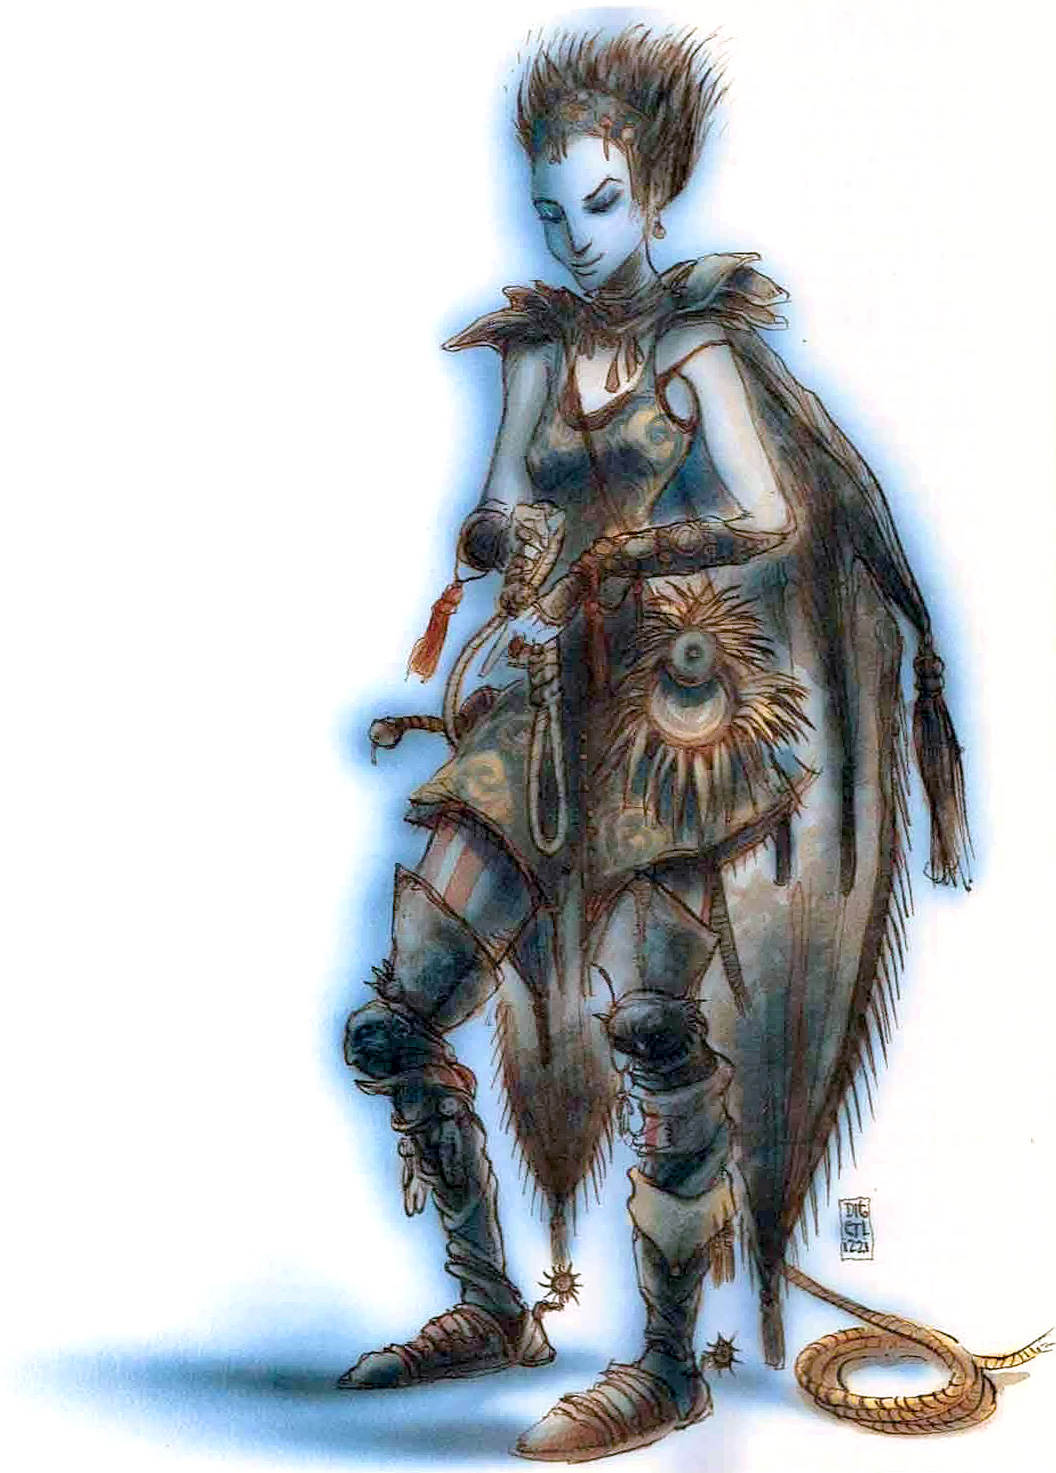 tiefling Factol Alisohn Nilesia dei Giustizieri, tiefling - by Tony Diterlizzi TSR - The Factol's Manifesto (1995-06) © Wizards of the Coast & Hasbro